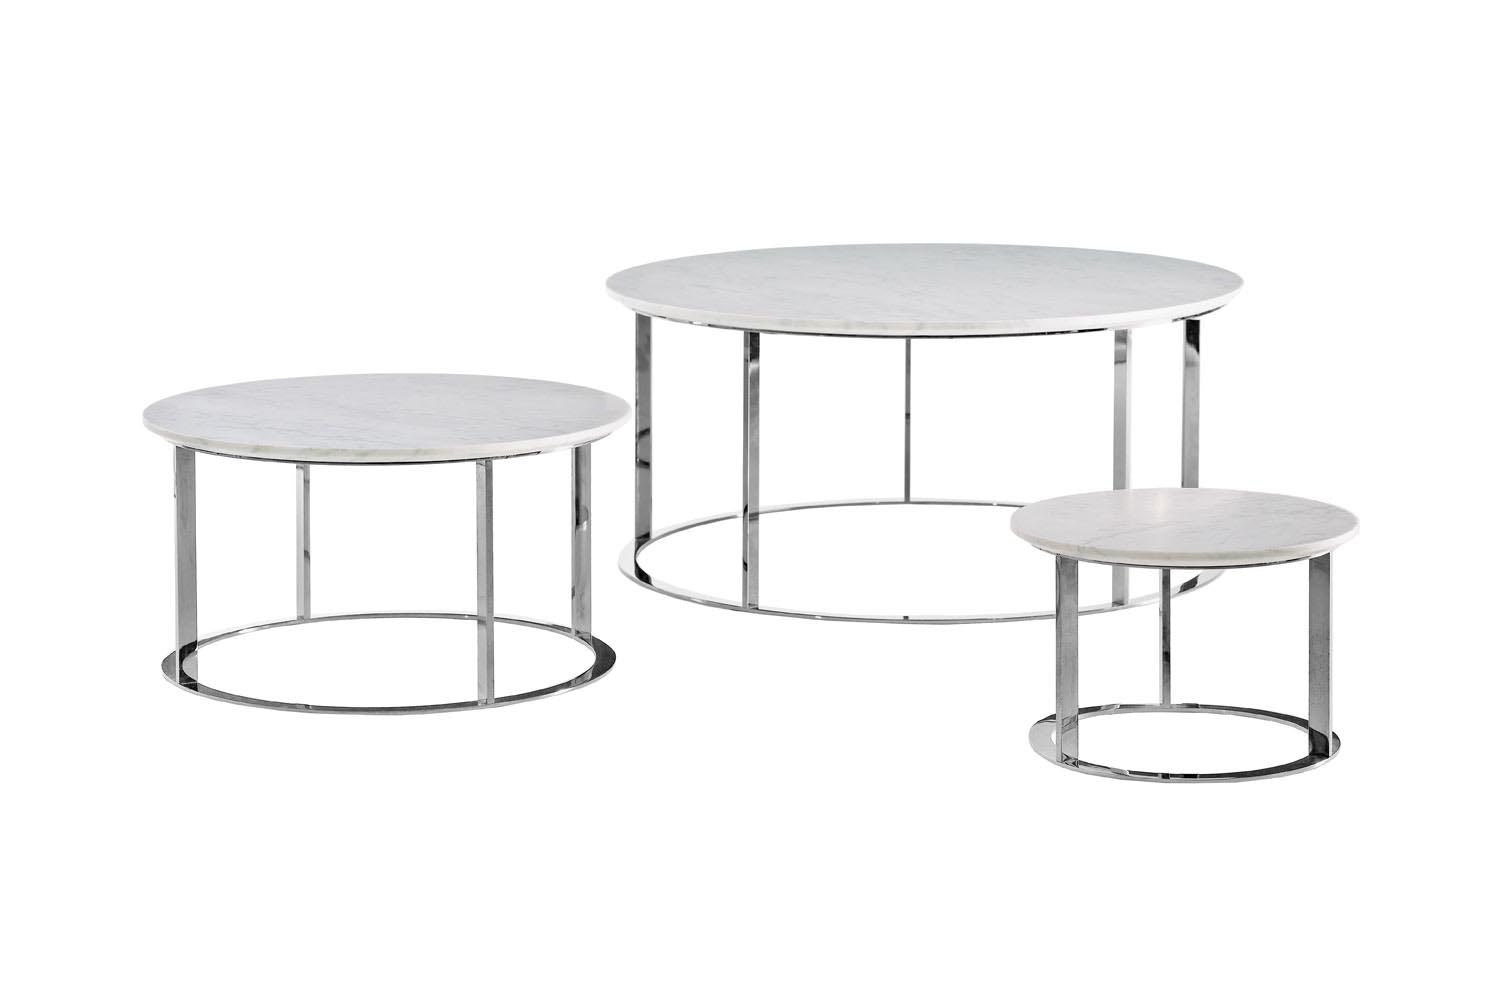 Mera Small Table by Antonio Citterio for B&B Italia